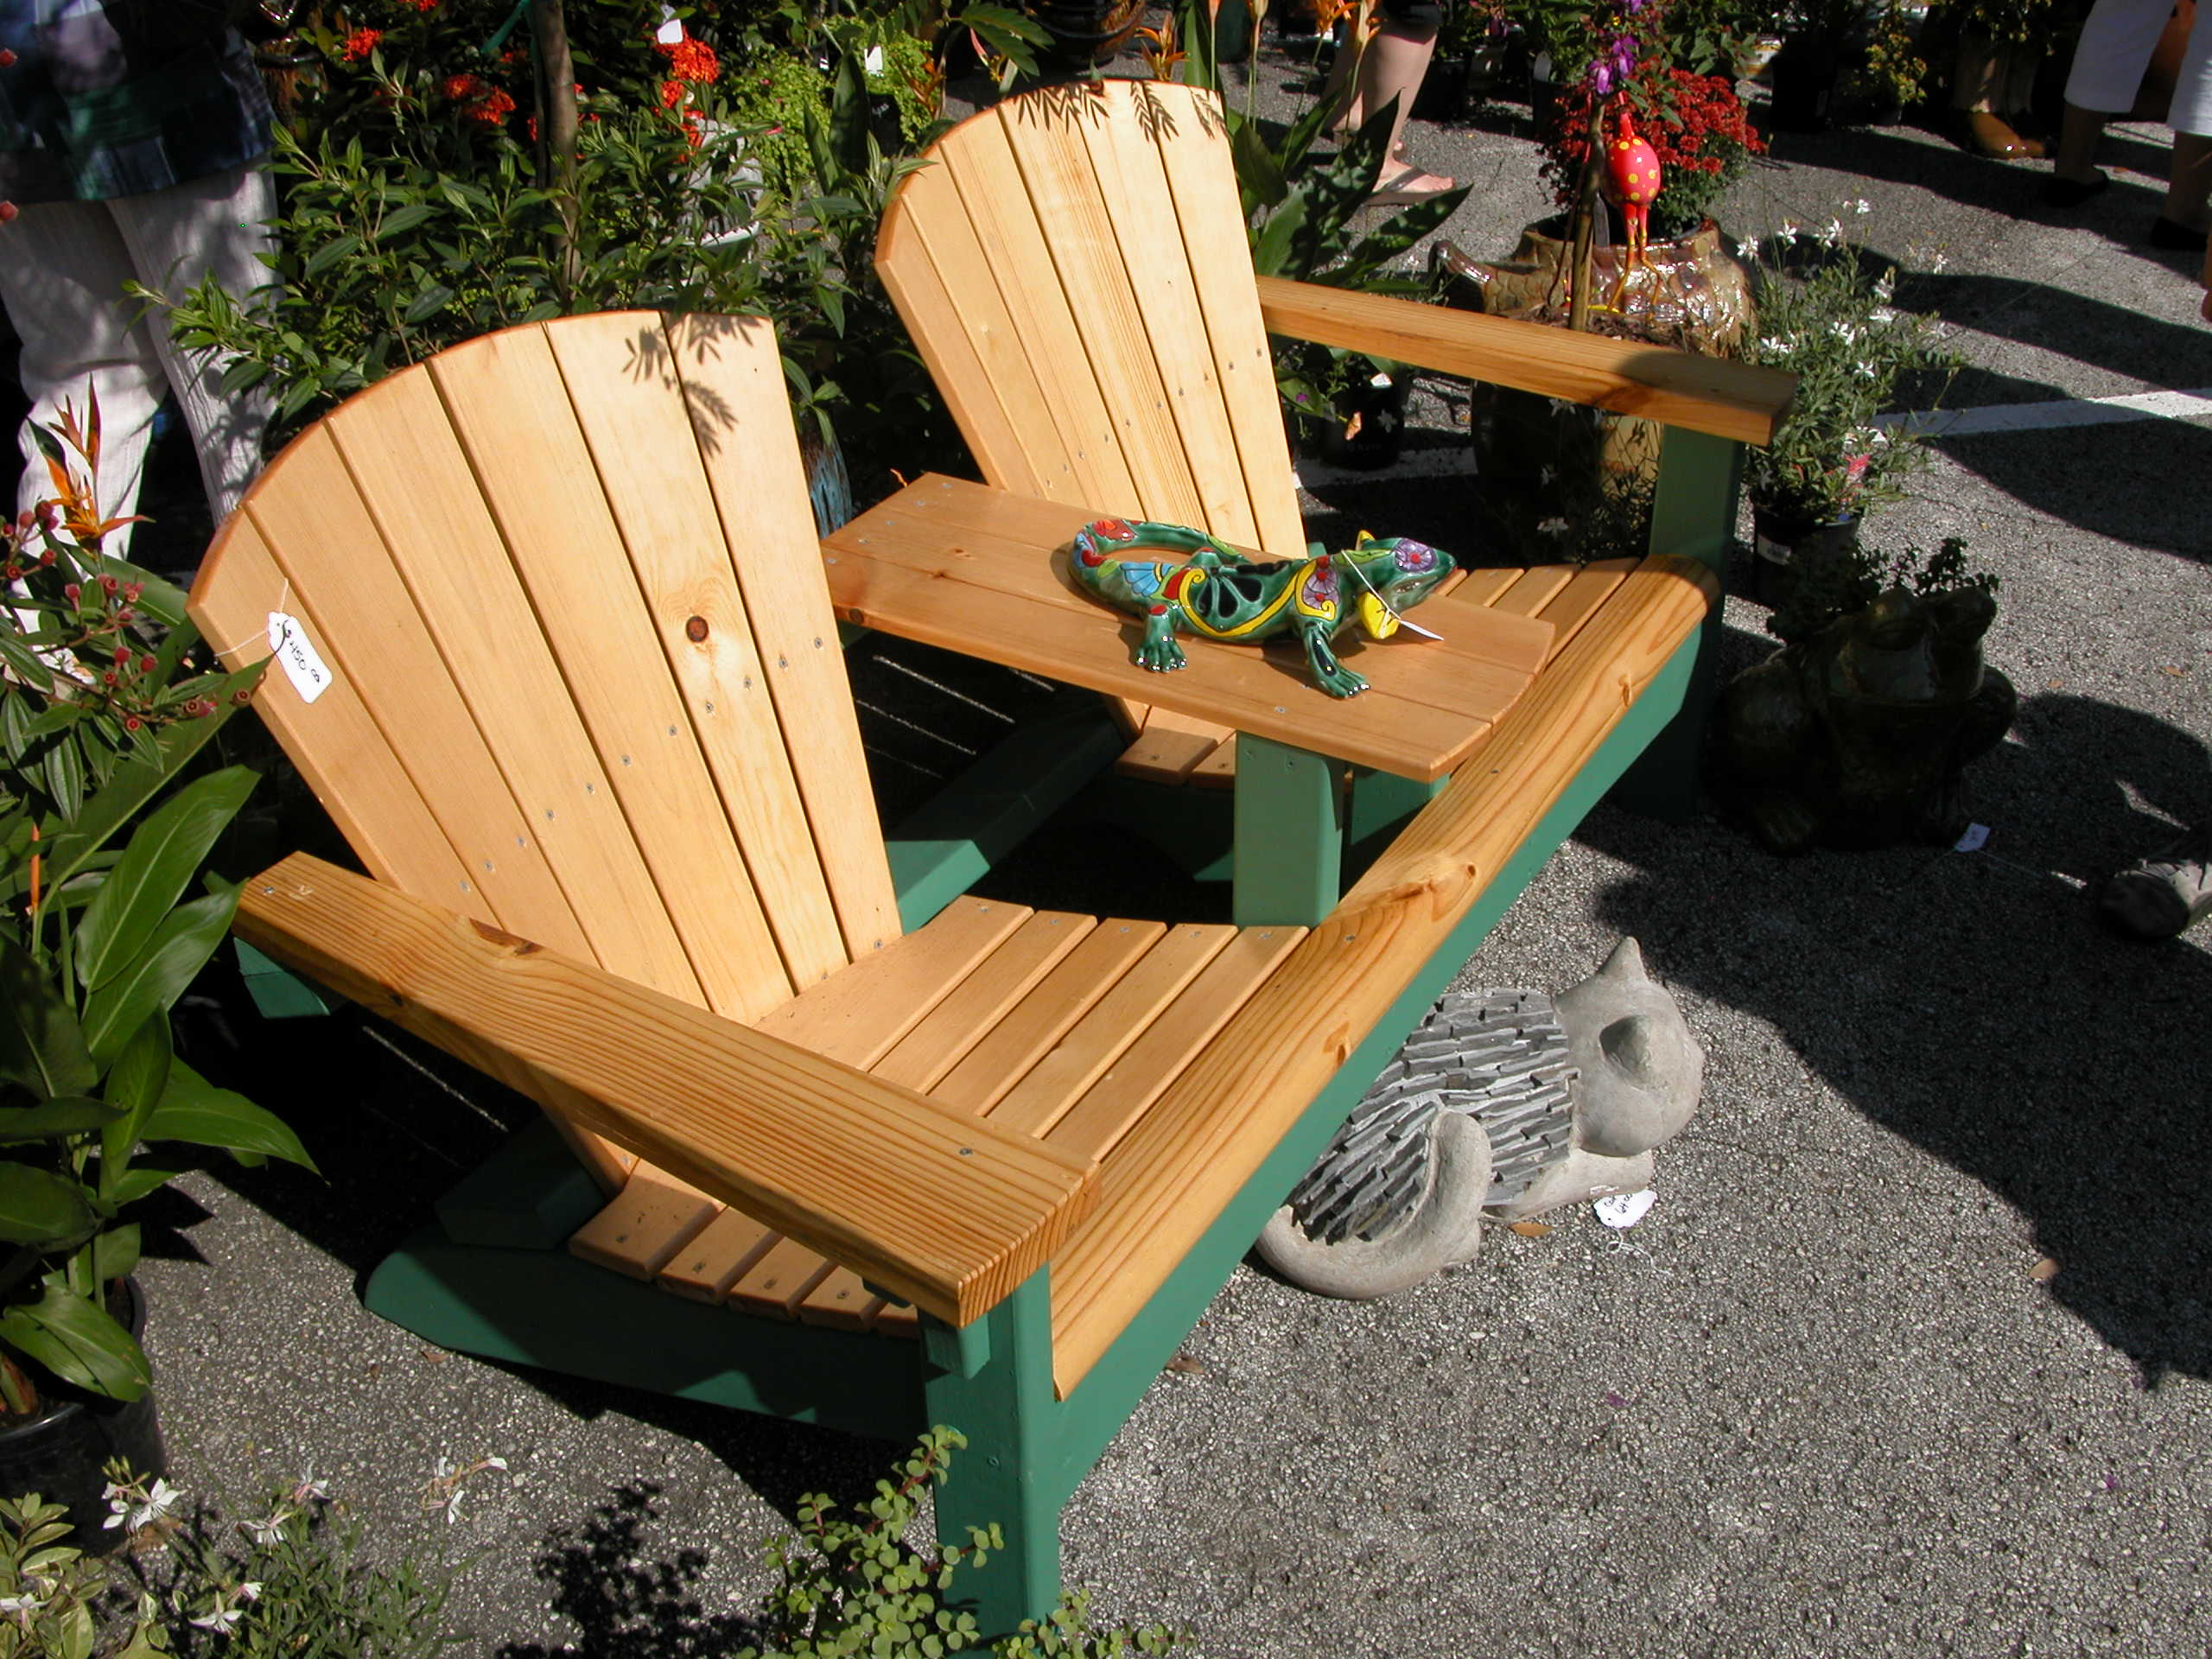 adirondack chair blueprints evenflo majestic high jungle double chairs lin u type